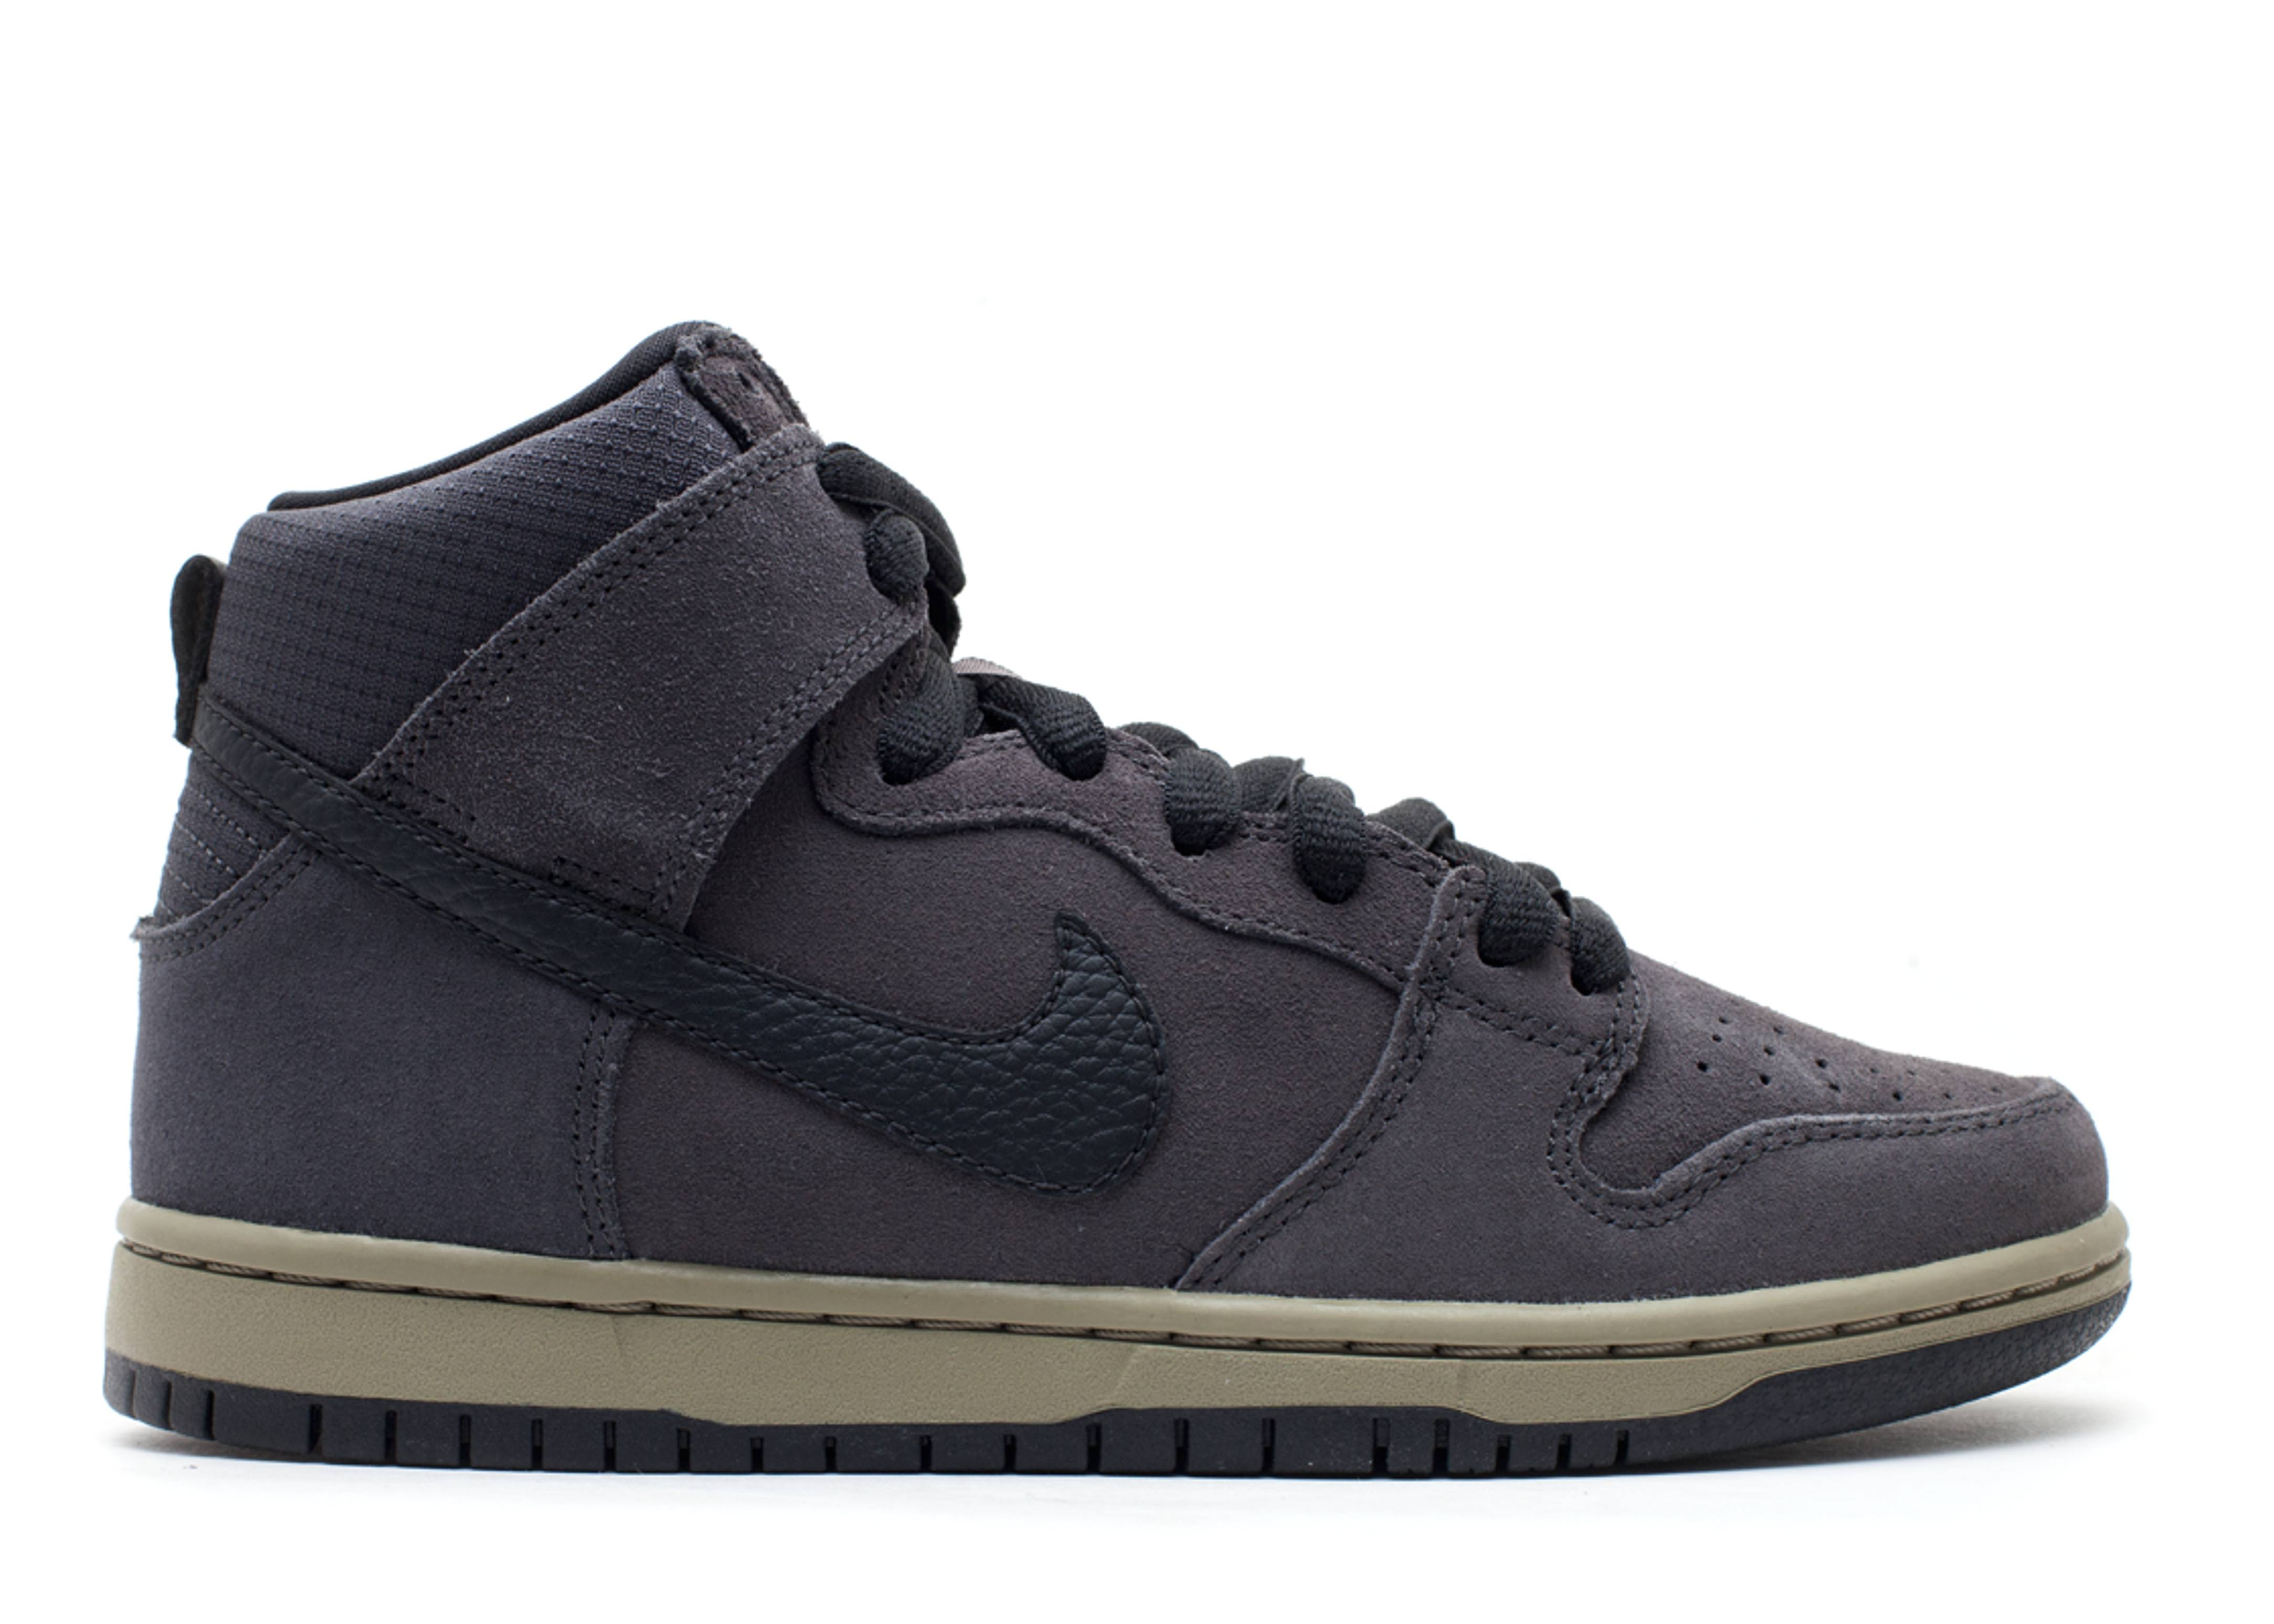 7c17efbd ... discount code for dunk high pro sb nike 305050 033 anthracite black  matte olive flight club